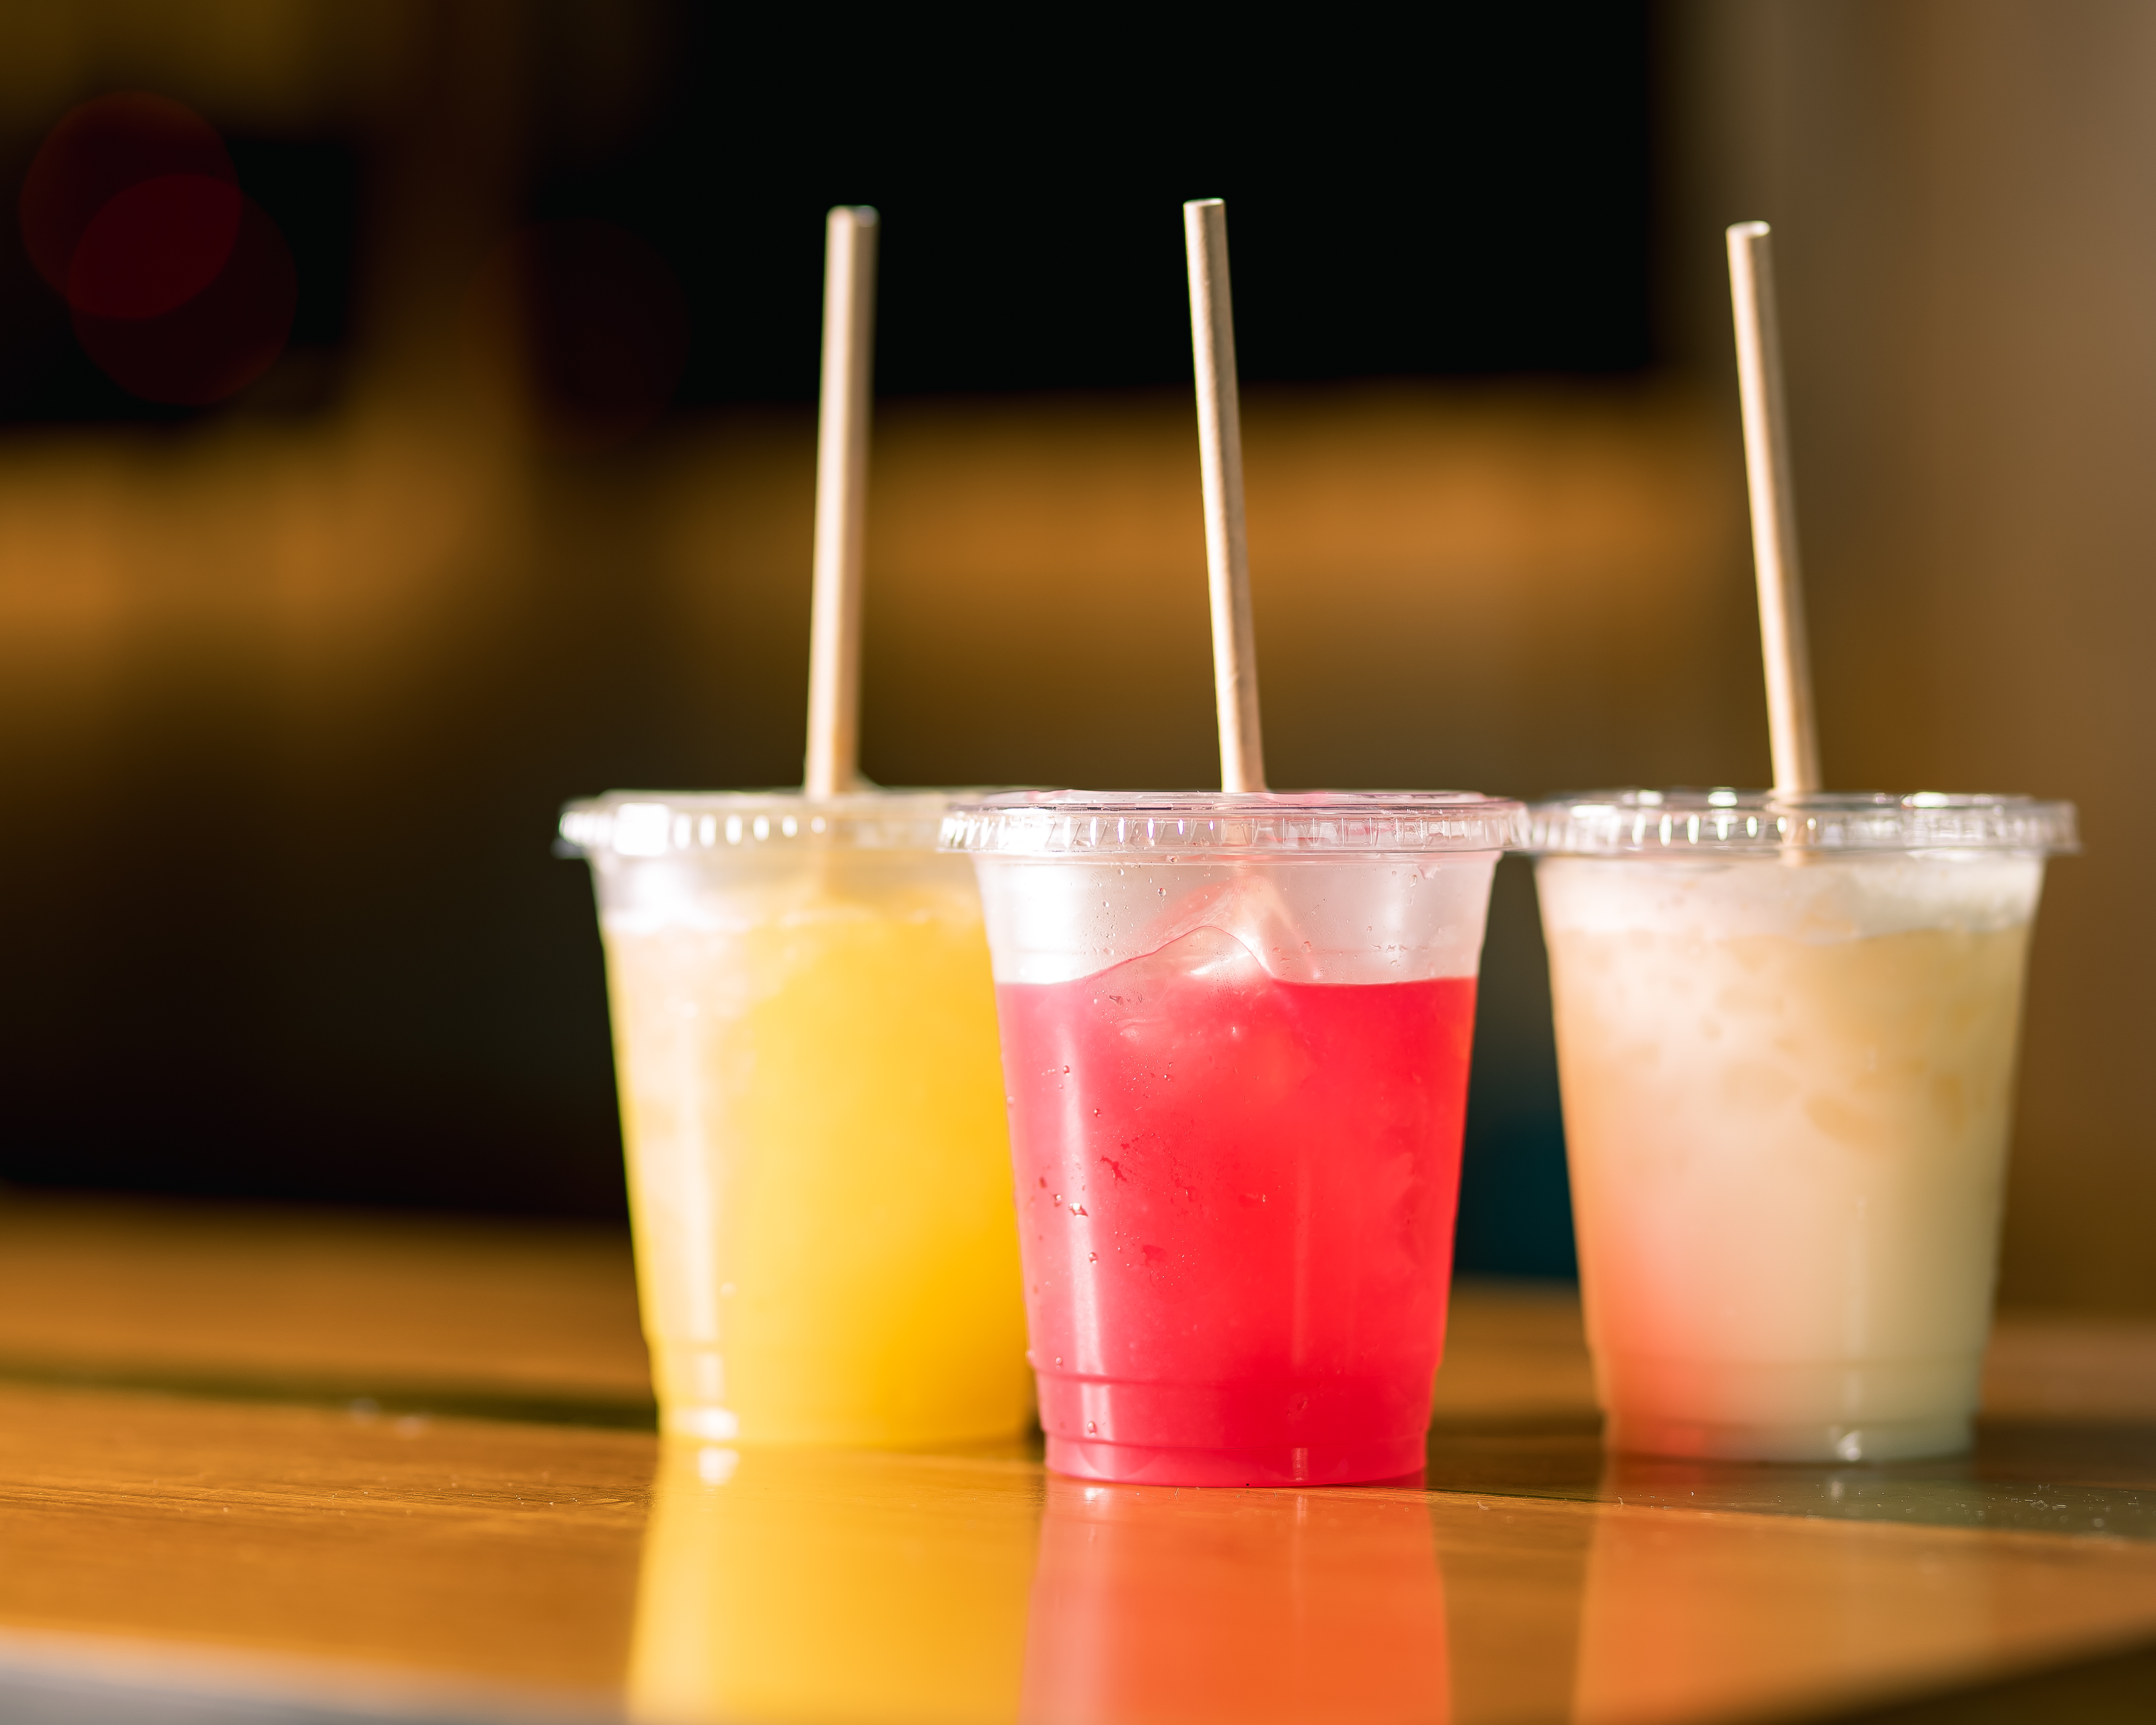 three clear plastic takeout cups with lids and straws, each filled with a different color drink